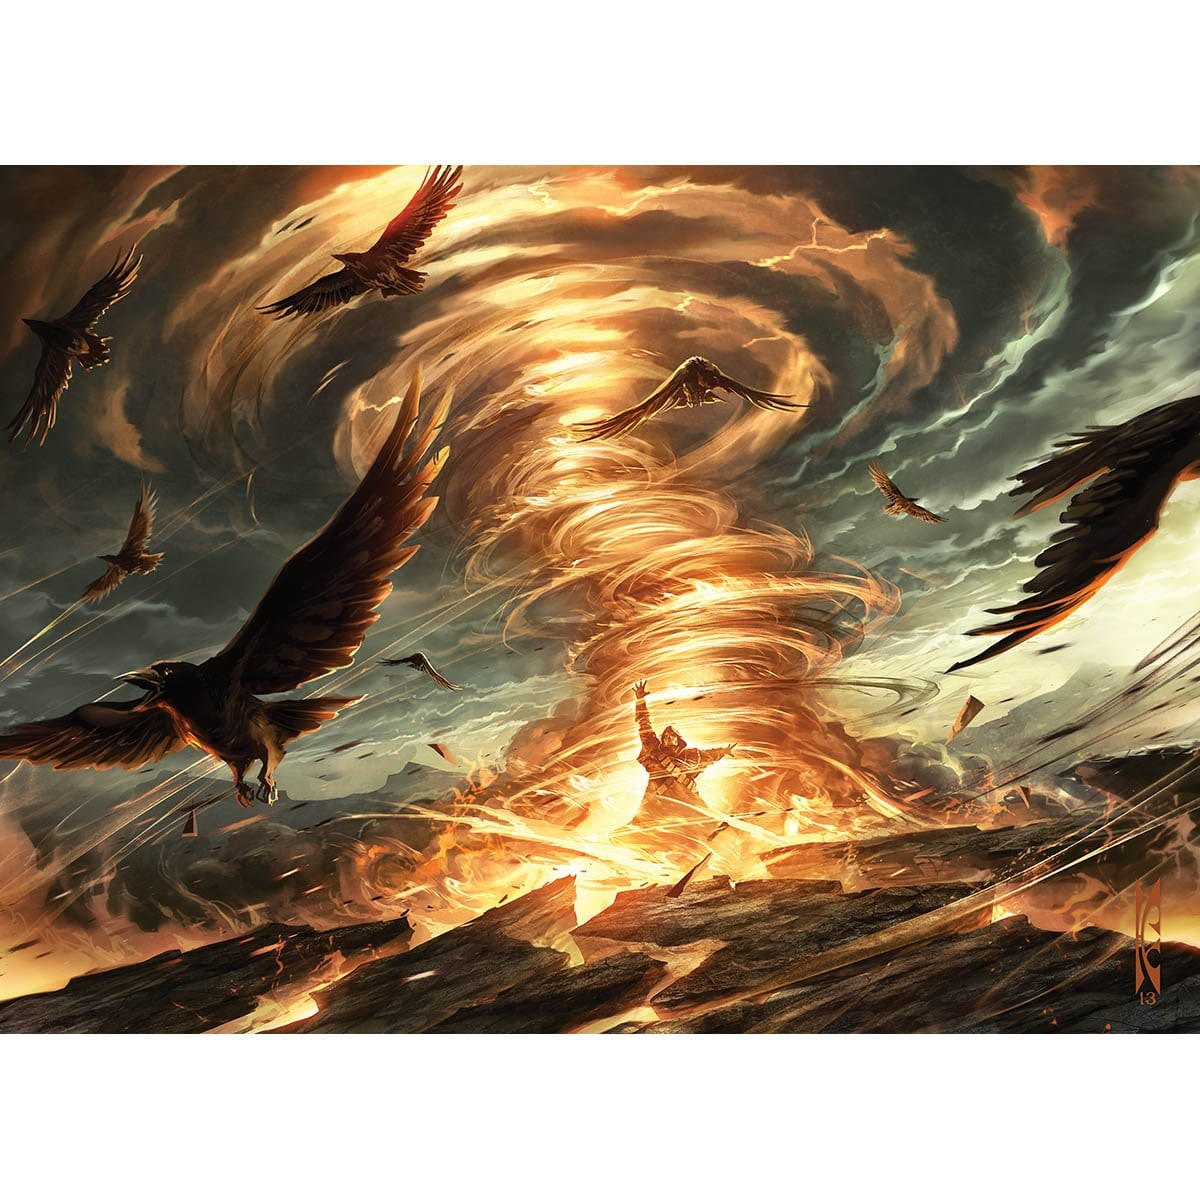 Firespout Print - Print - Original Magic Art - Accessories for Magic the Gathering and other card games